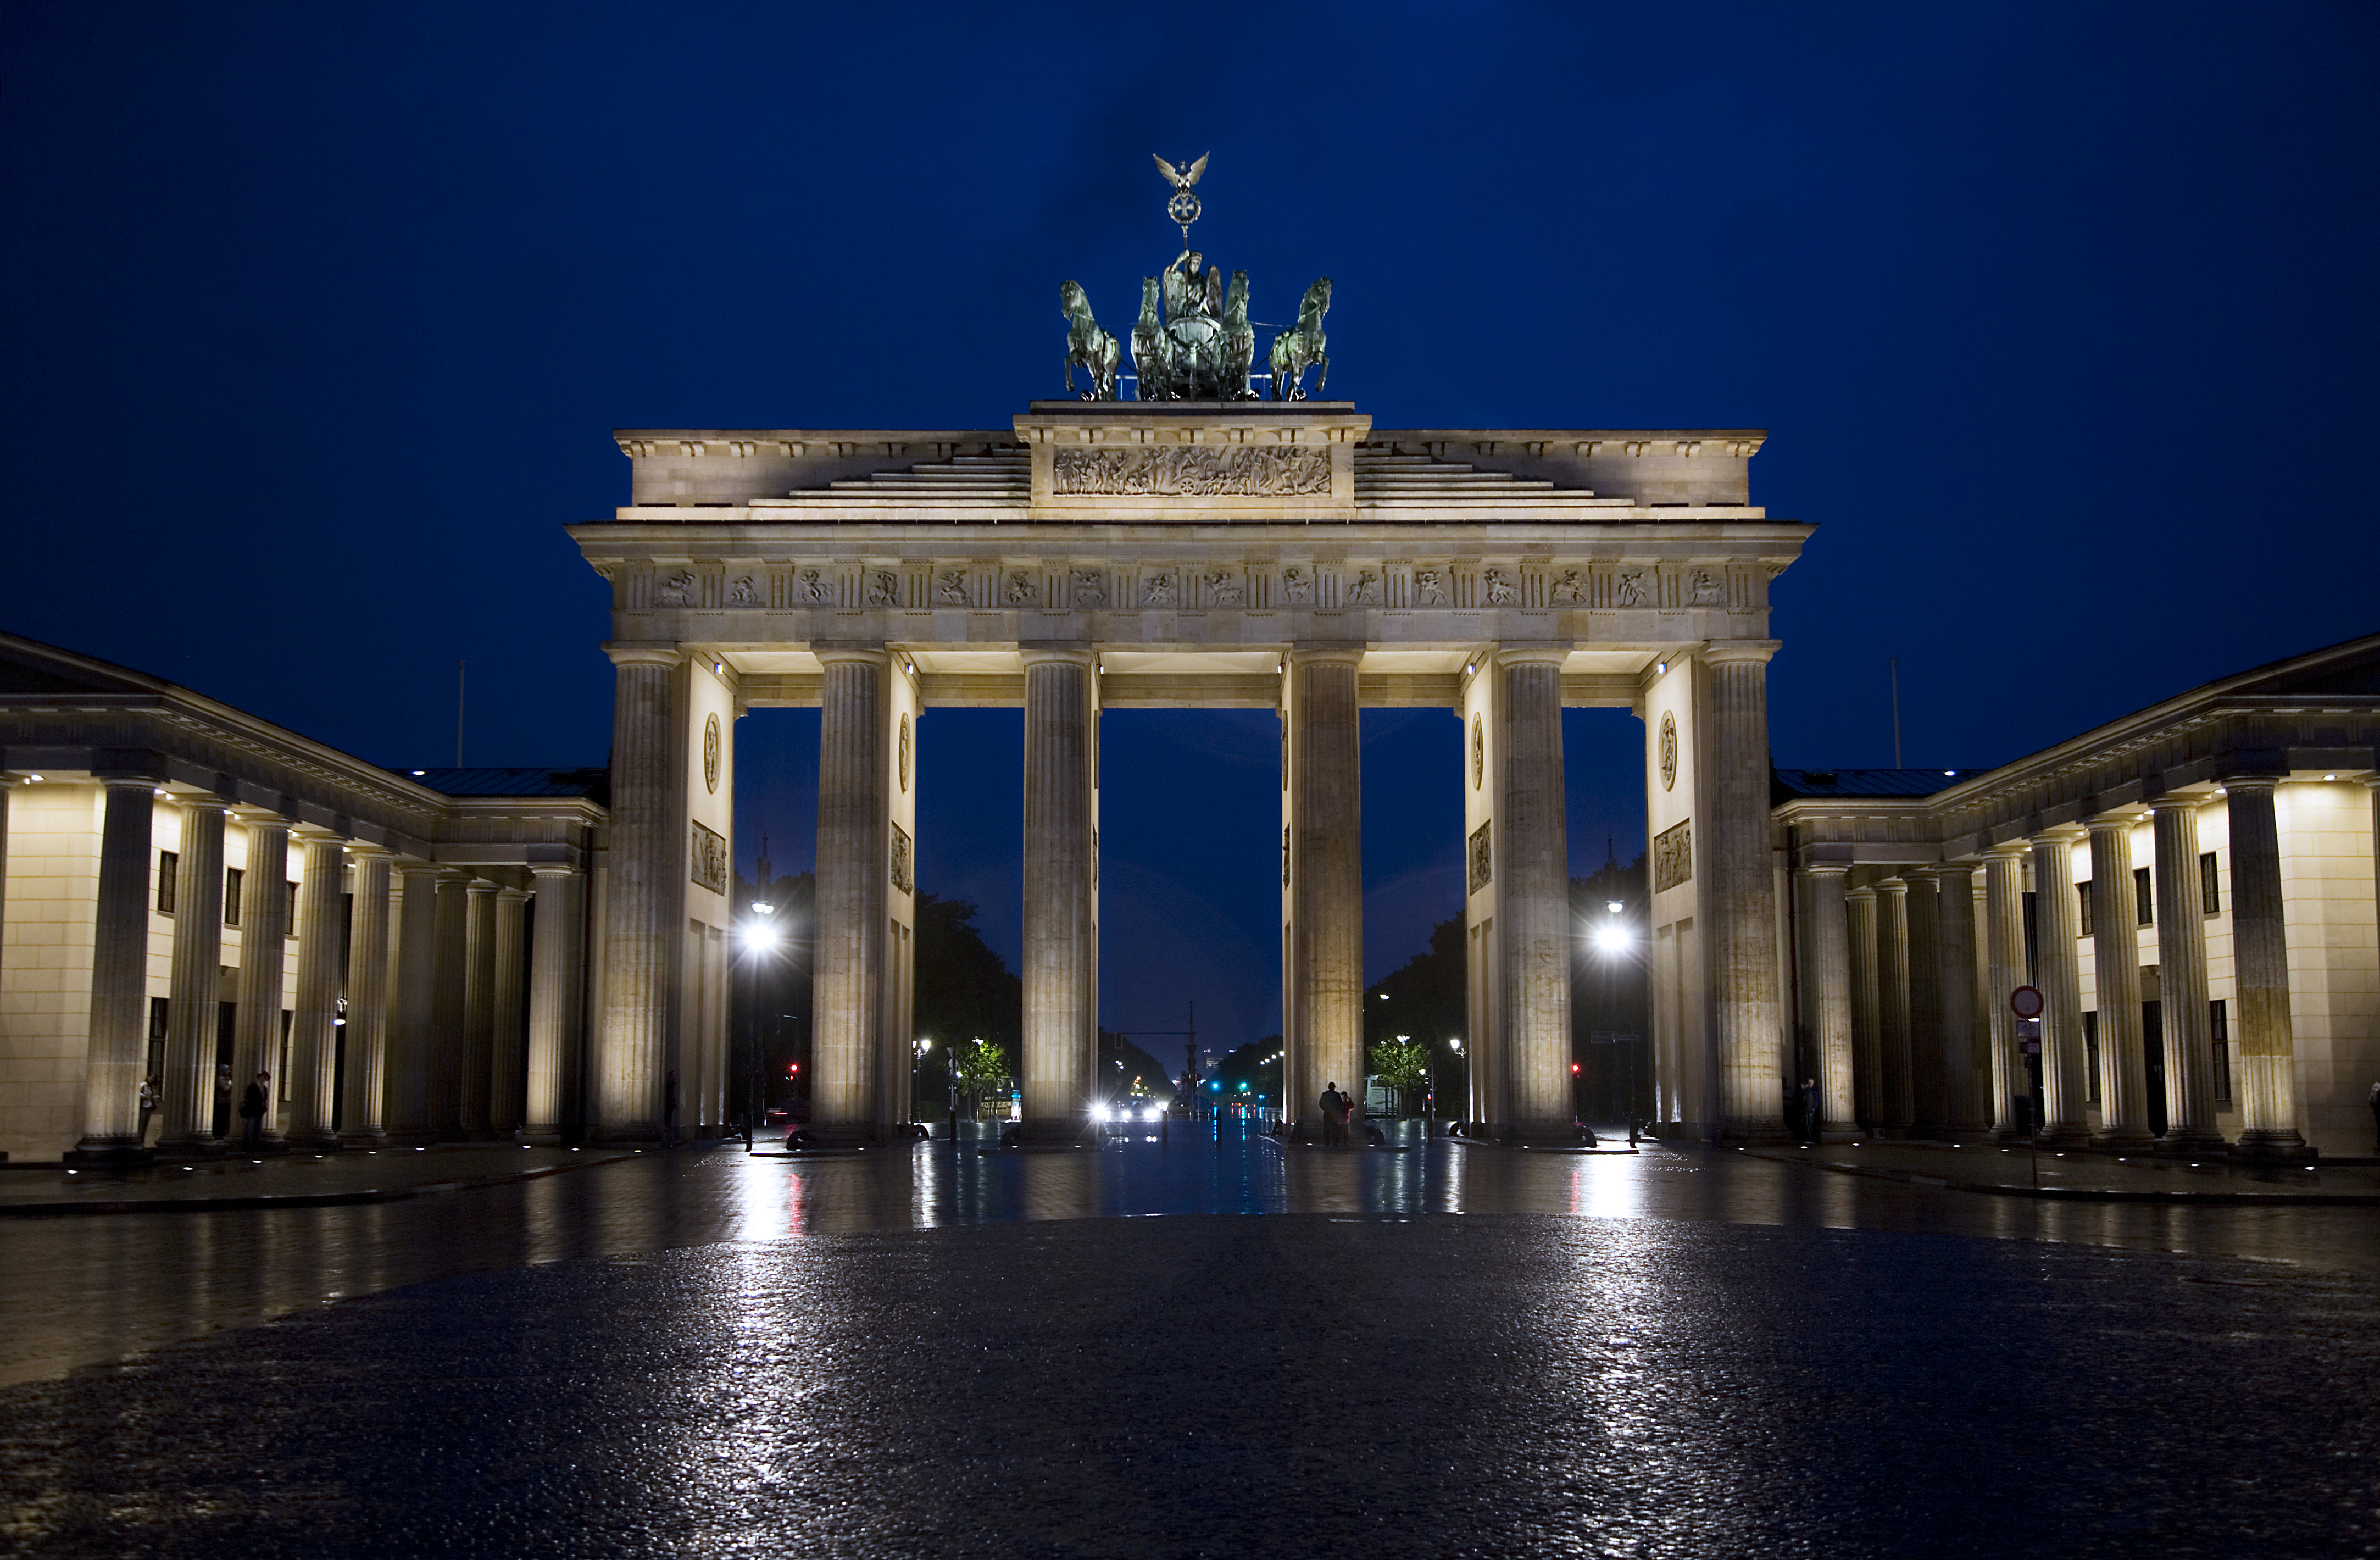 brandenburg gate at night - photo #3